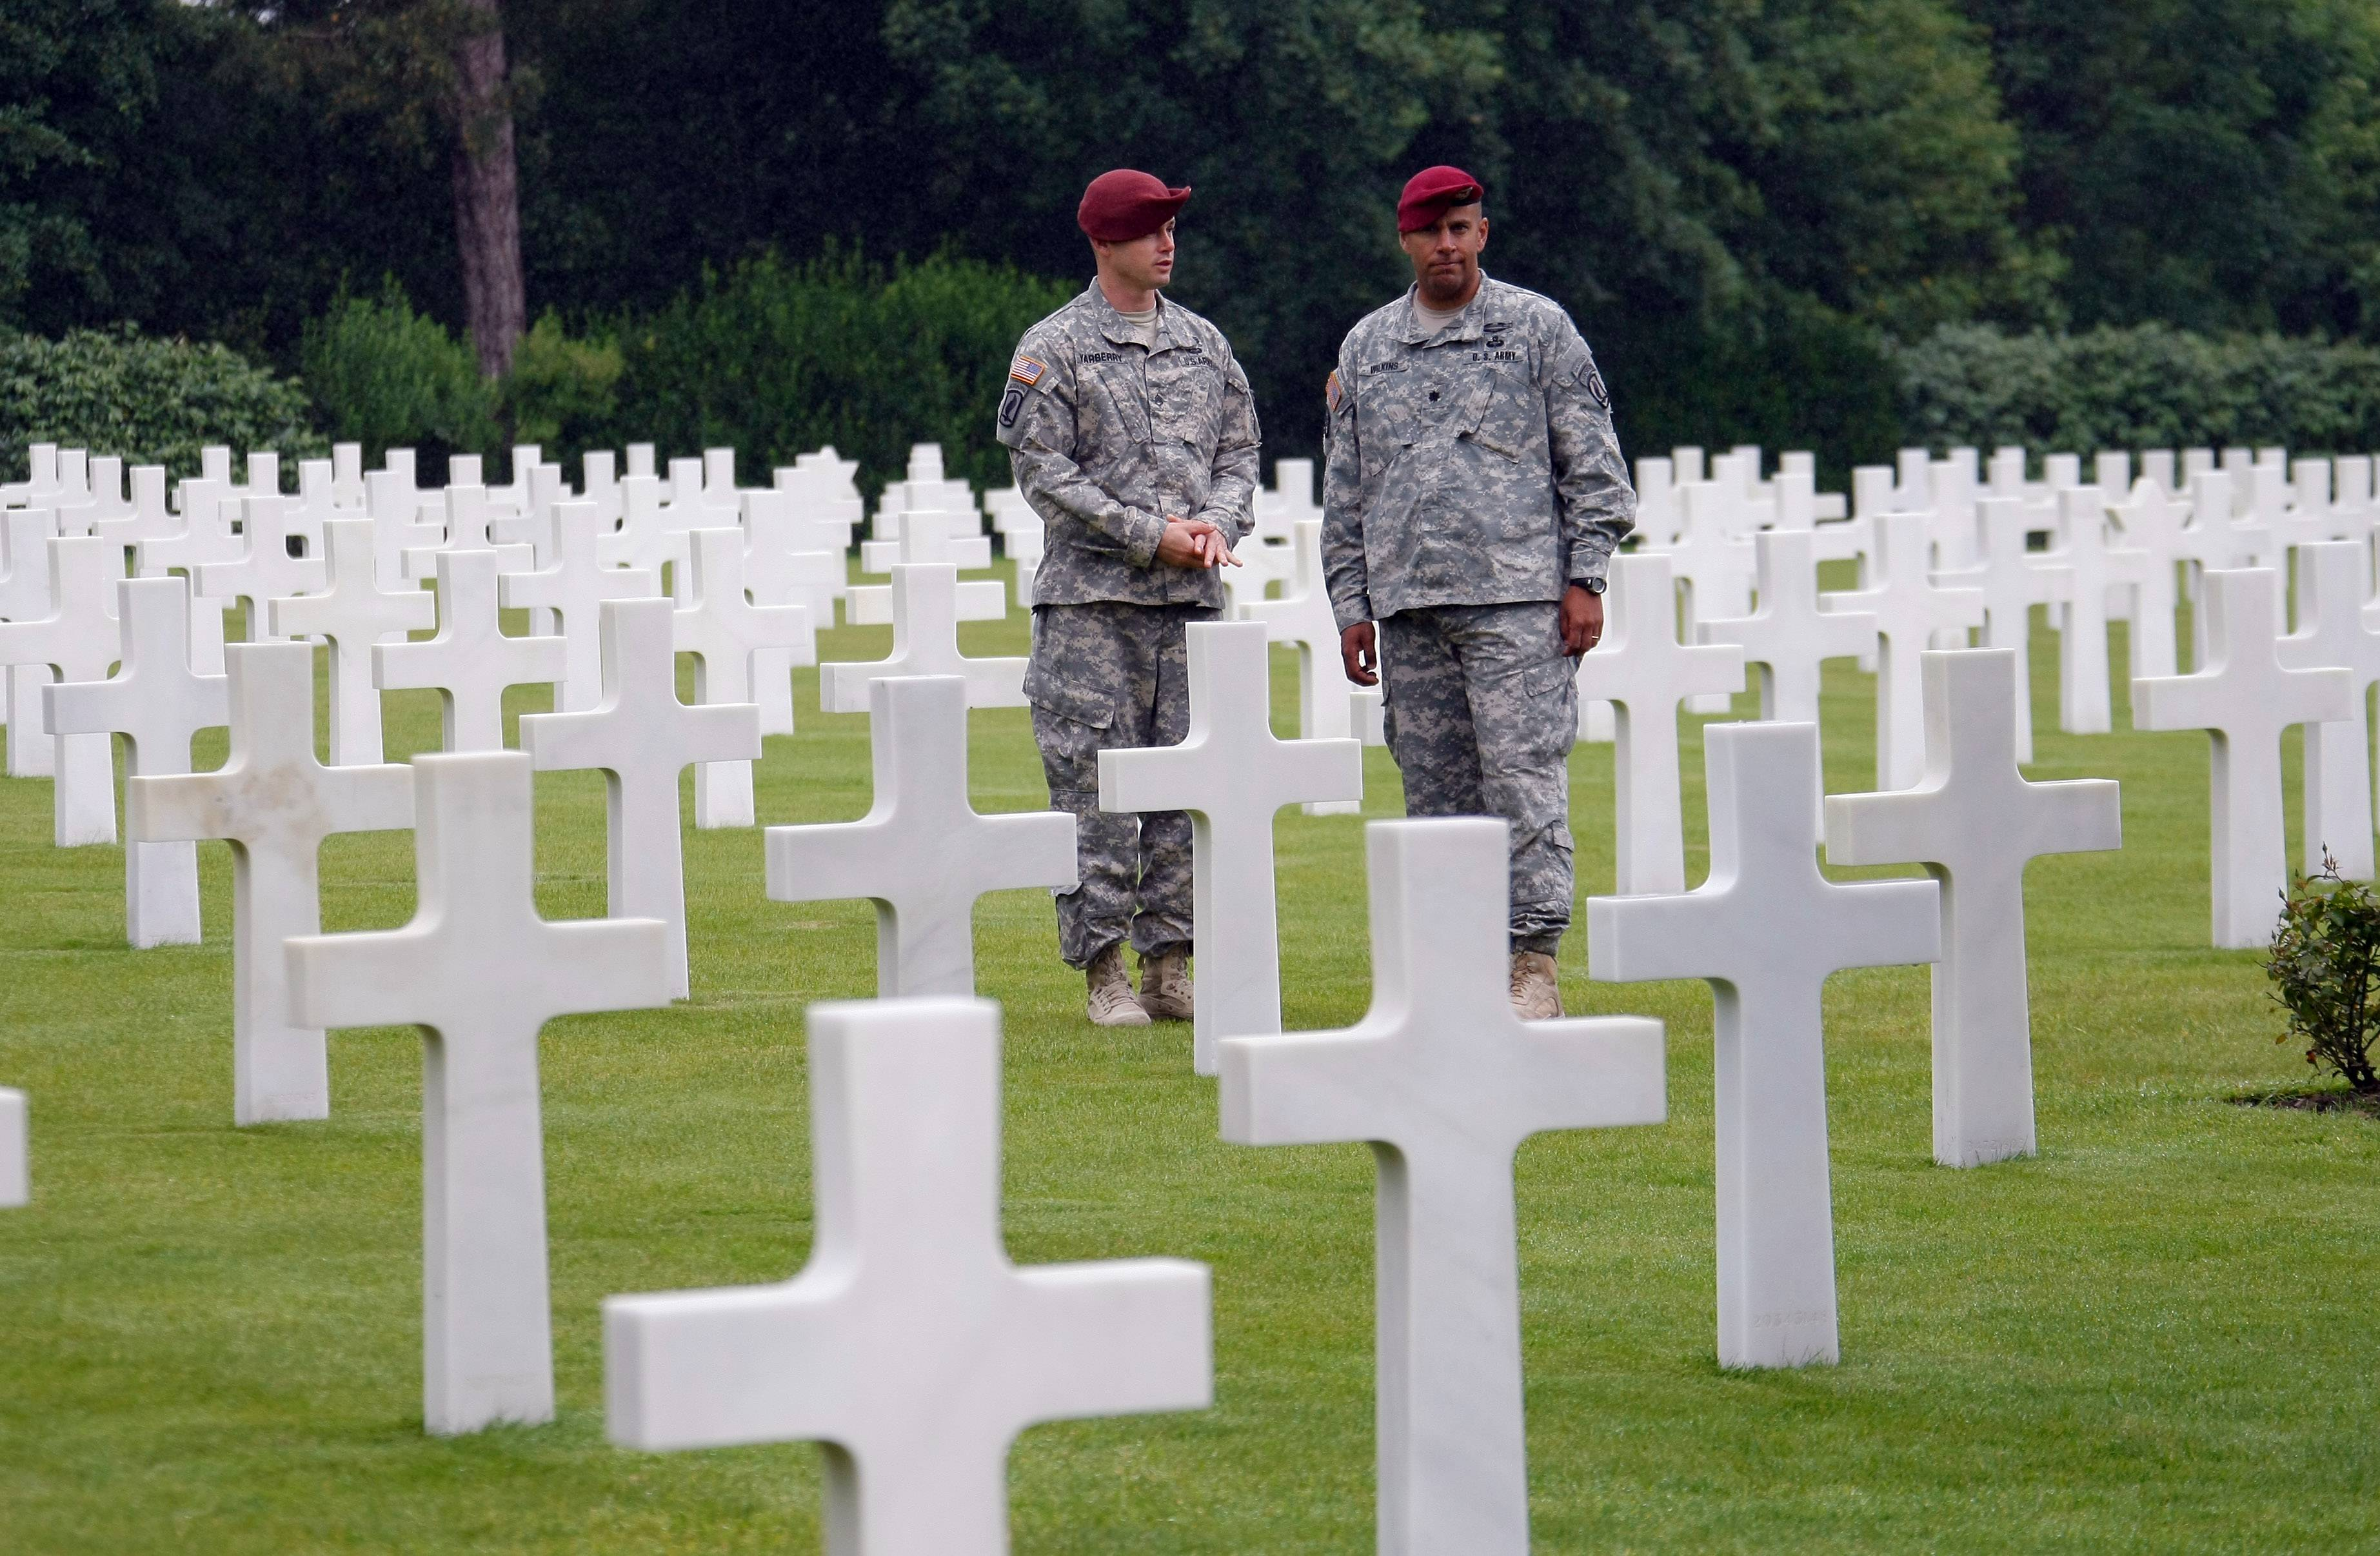 LTC Patrick Wilkins, right, 42, and Sergeant Major Stephen Yarberry of 173rd Airborne Brigade walk in the Normandy American Cemetery and Memorial, in Colleville sur Mer, France. World leaders and veterans are marking the 70th anniversary of the invasion this week in Normandy.